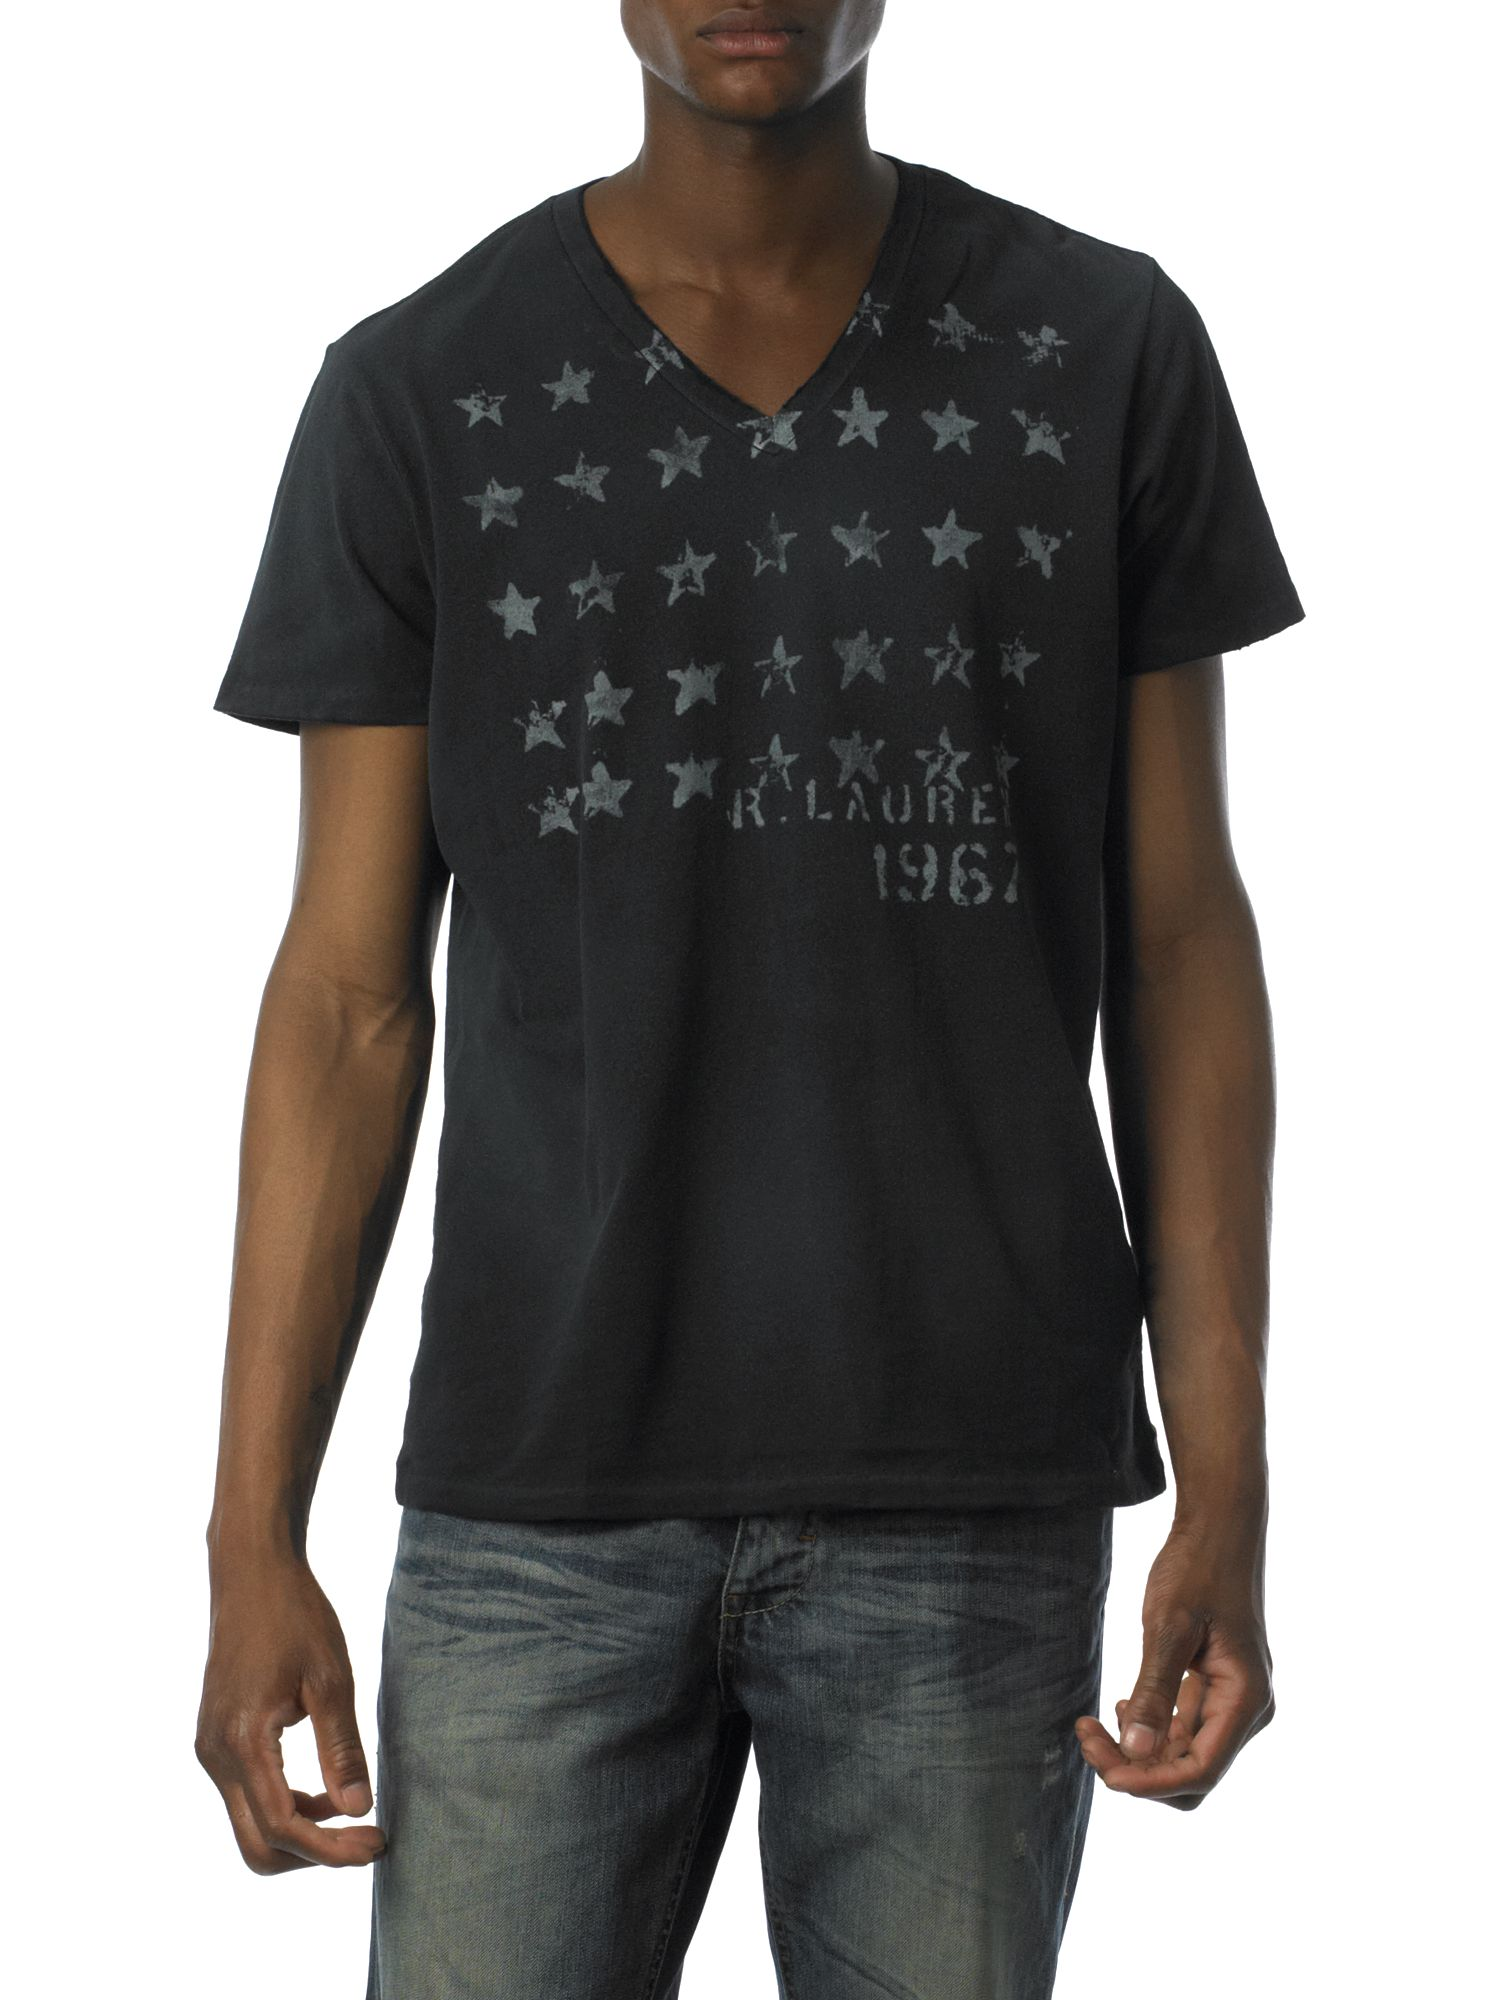 Polo Jeans V-neck stars T-shirt Black product image